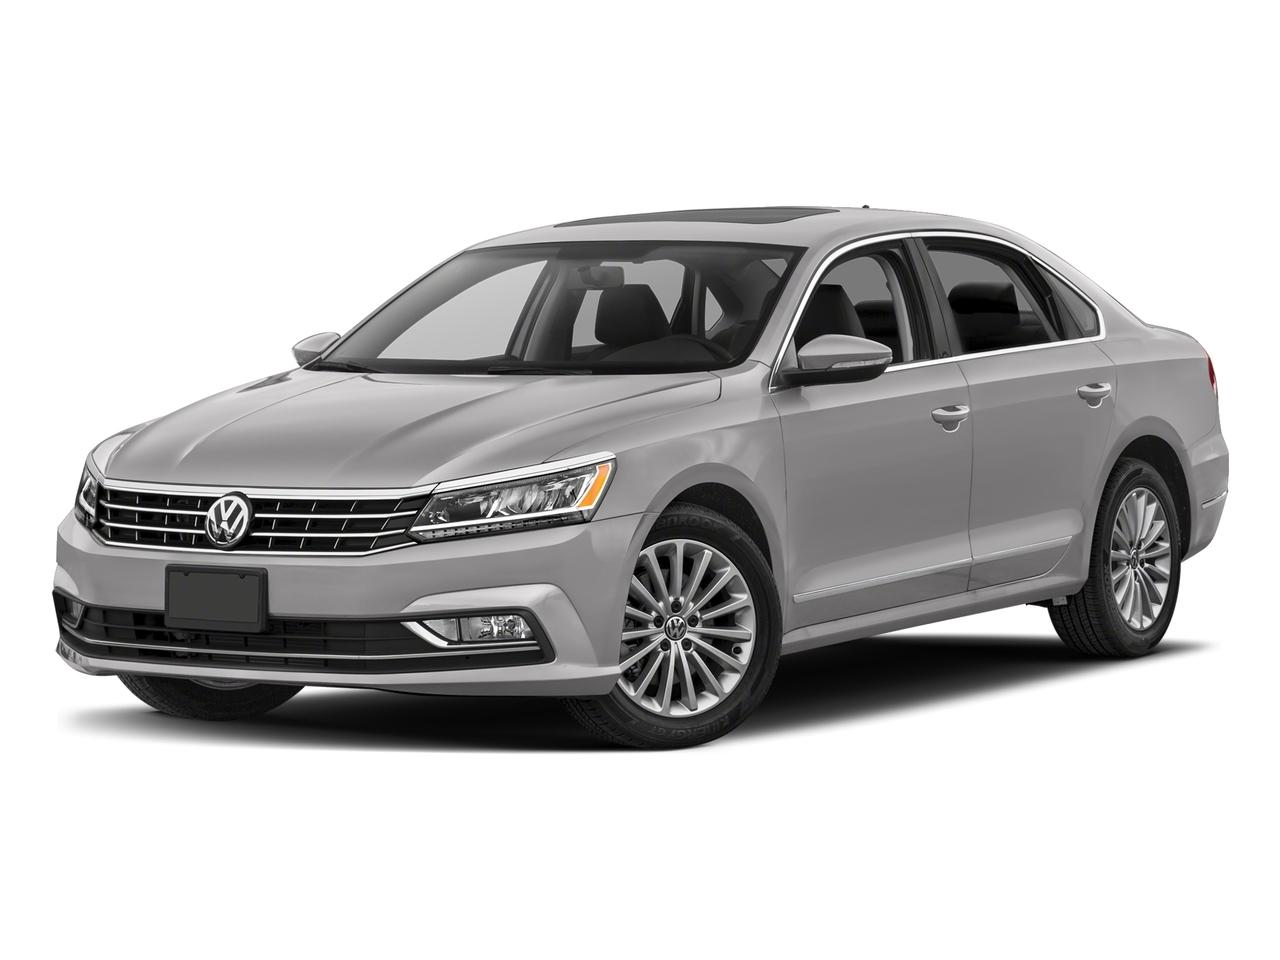 2018 Volkswagen Passat Vehicle Photo in San Antonio, TX 78257